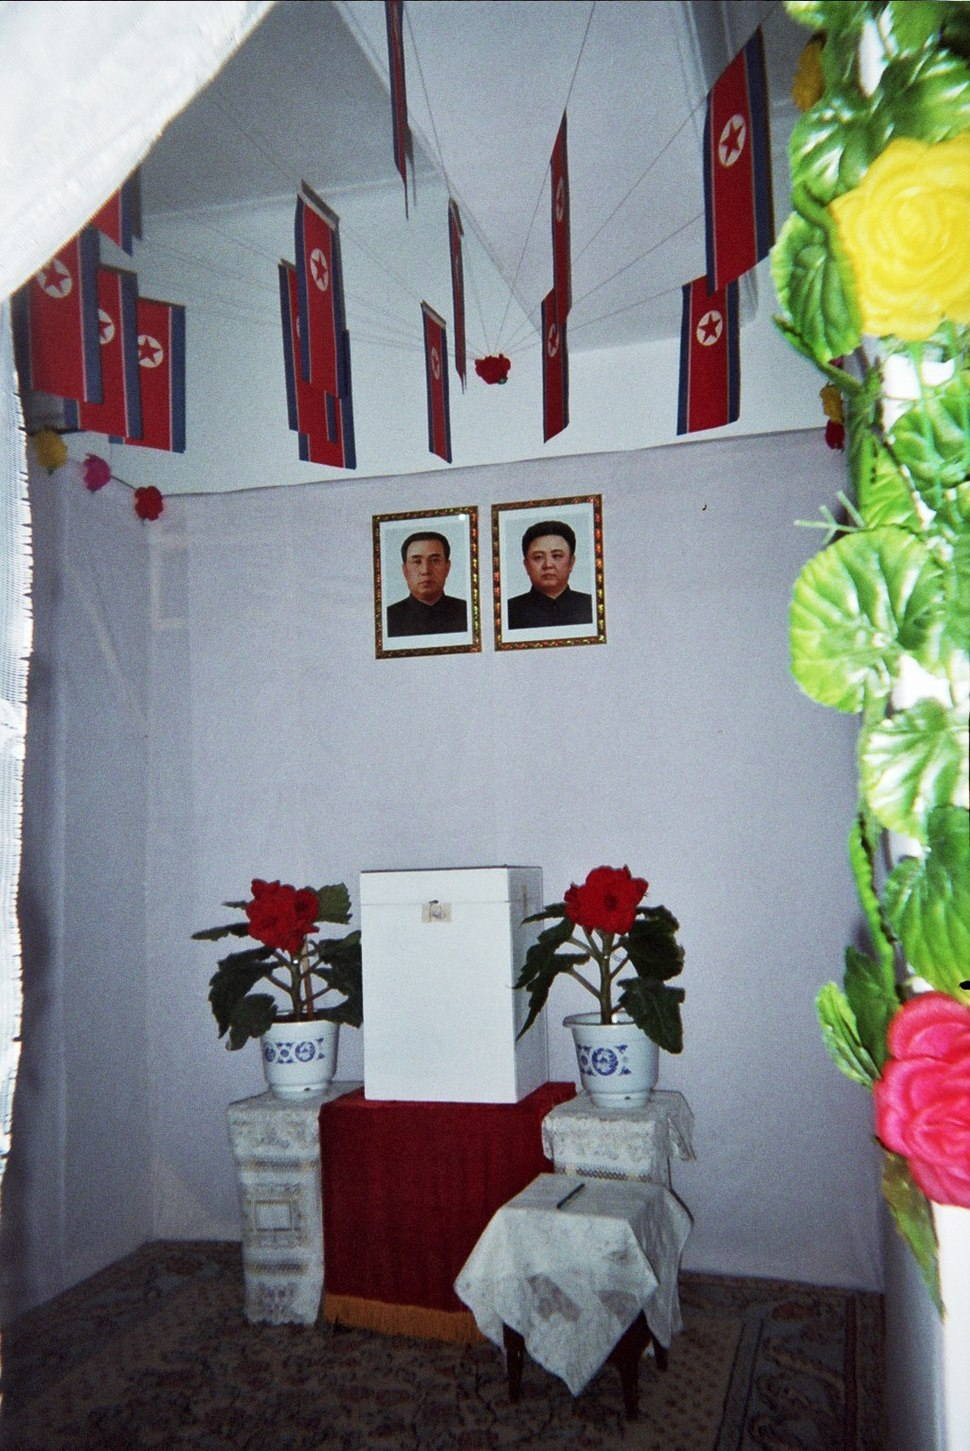 DPRK election